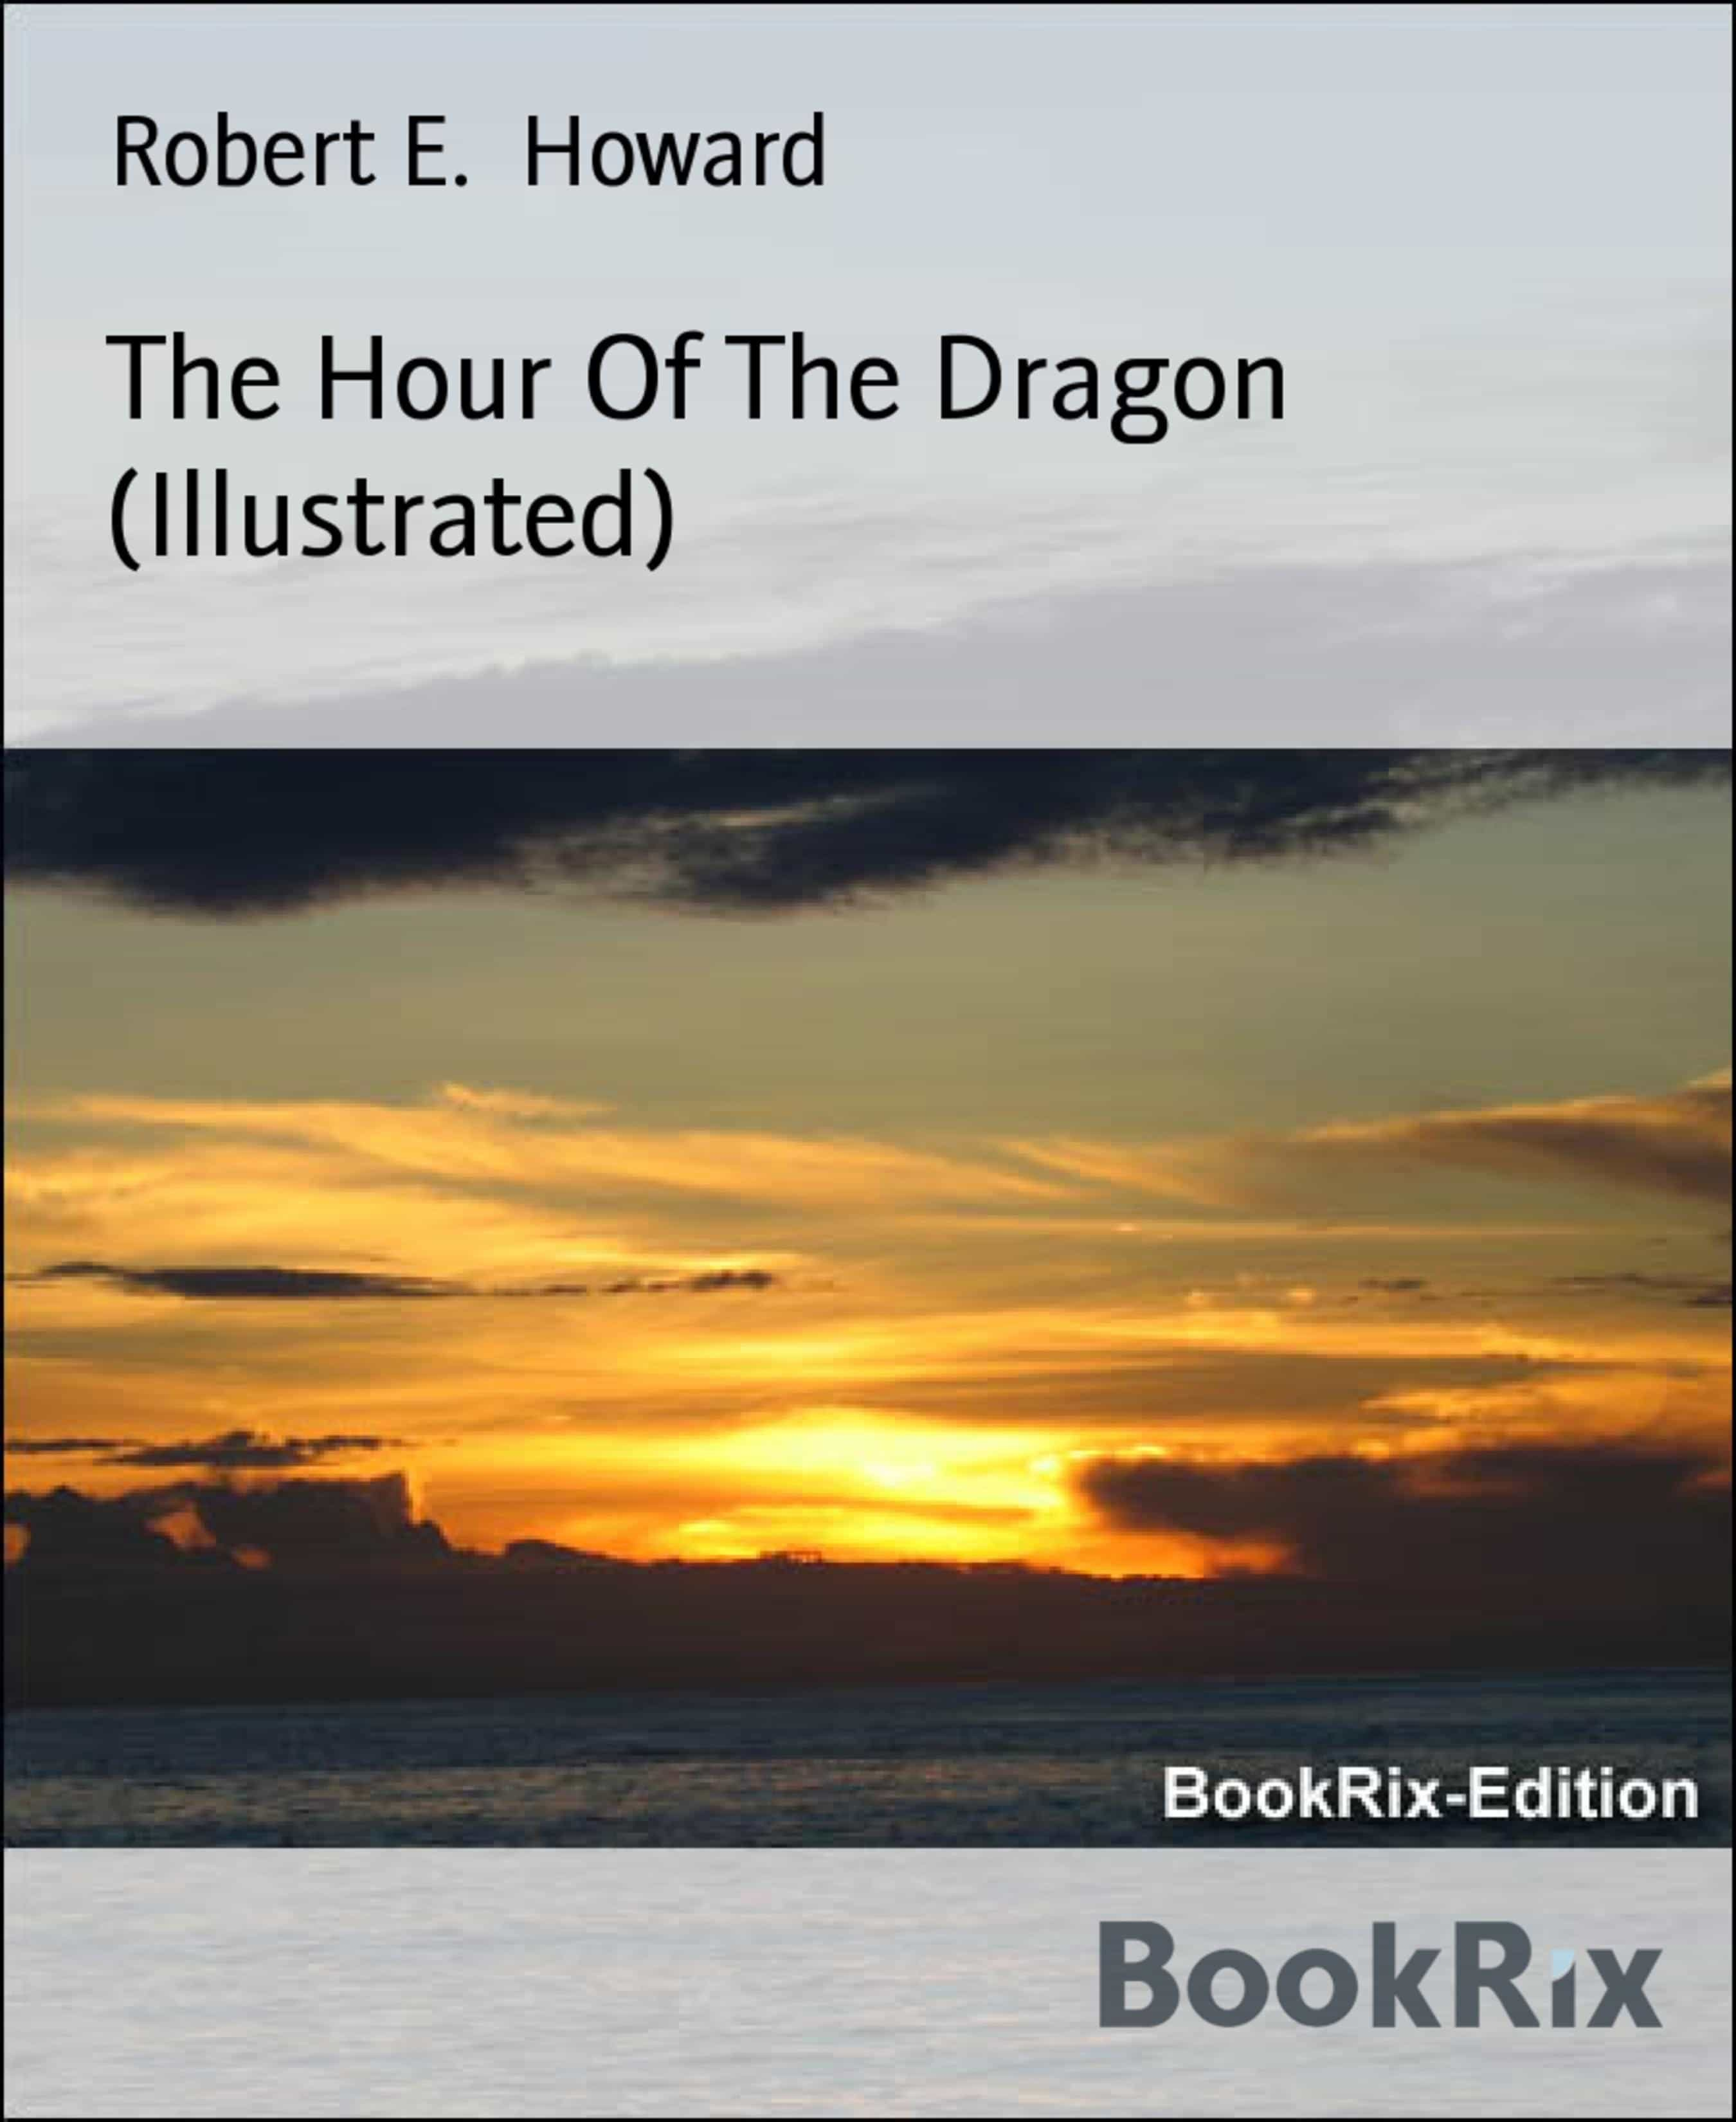 THE HOUR OF THE DRAGON (ILLUSTRATED)